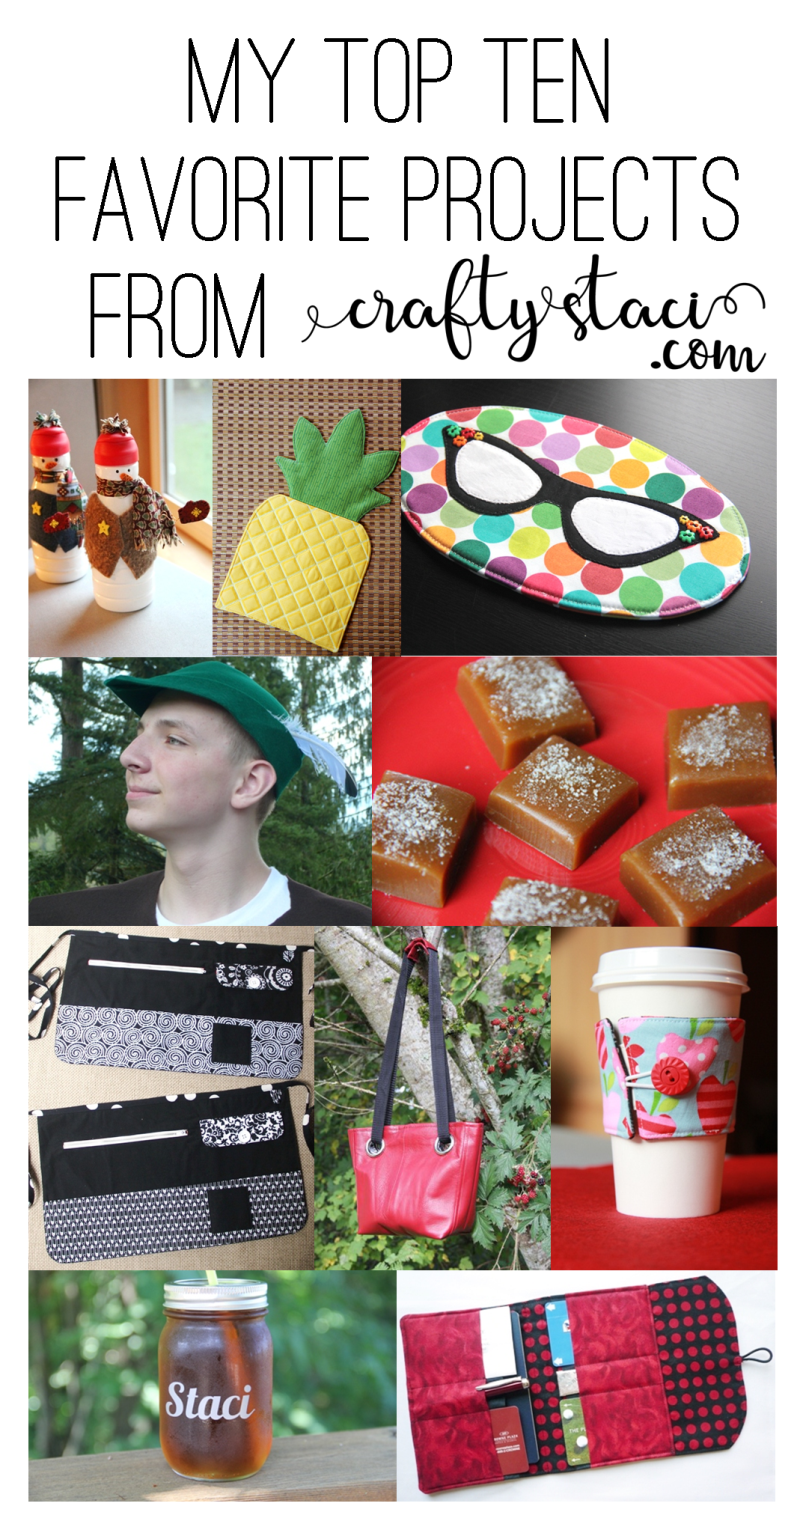 My top ten favorite projects from craftystaci.com #sewing #crafts #recipes #topten